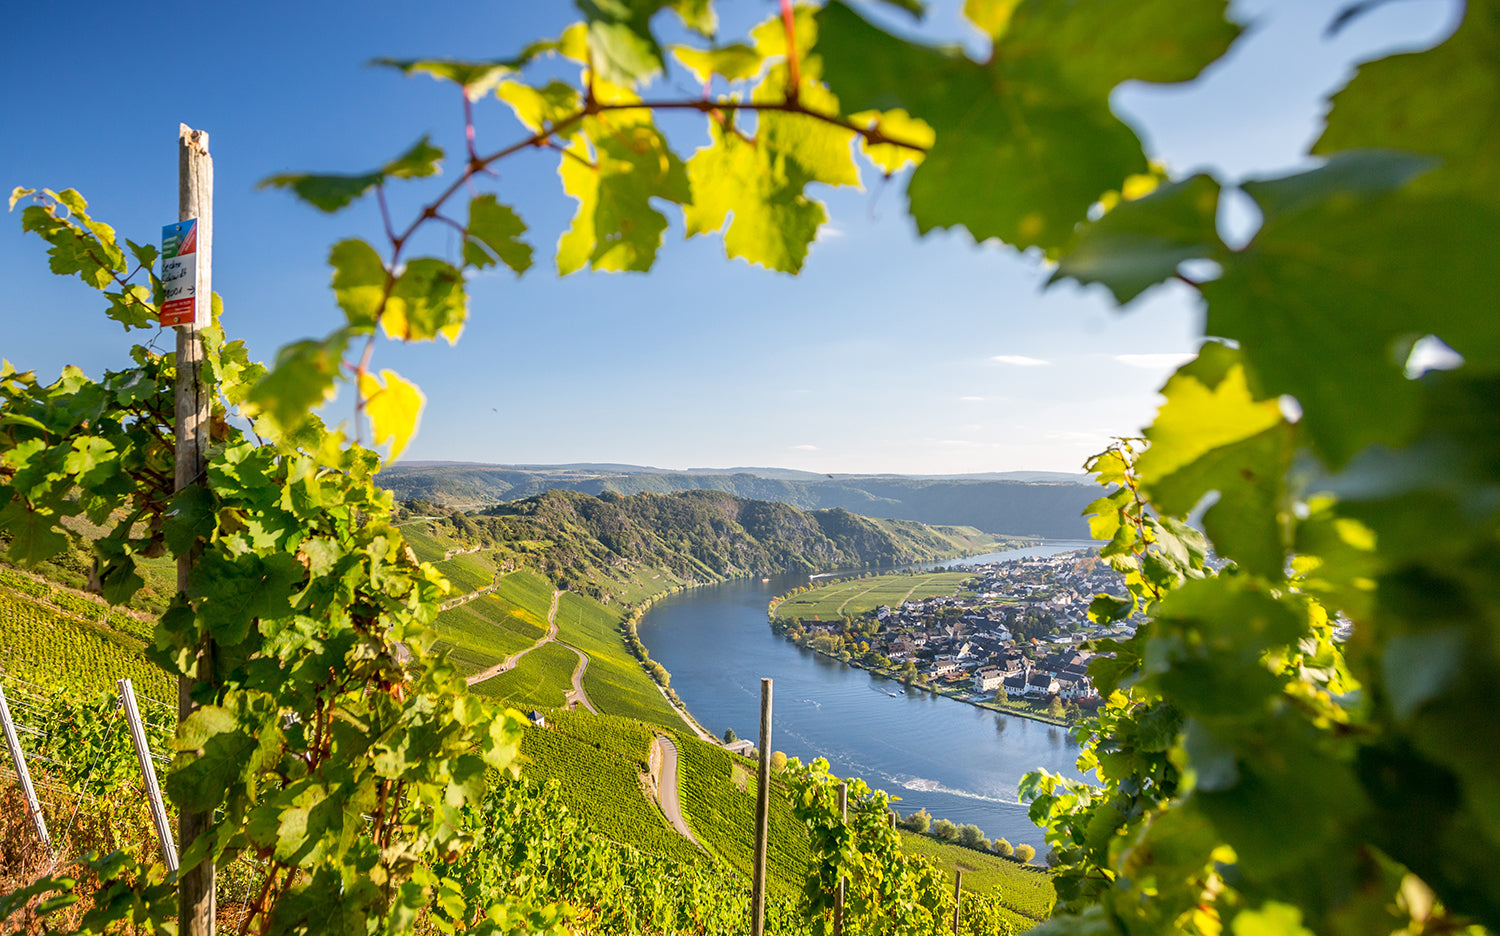 Vineyards in the Mosel, like Rheingau, are on steep south-facing slopes of the river, where they catch the maximum sunshine in this cool region.